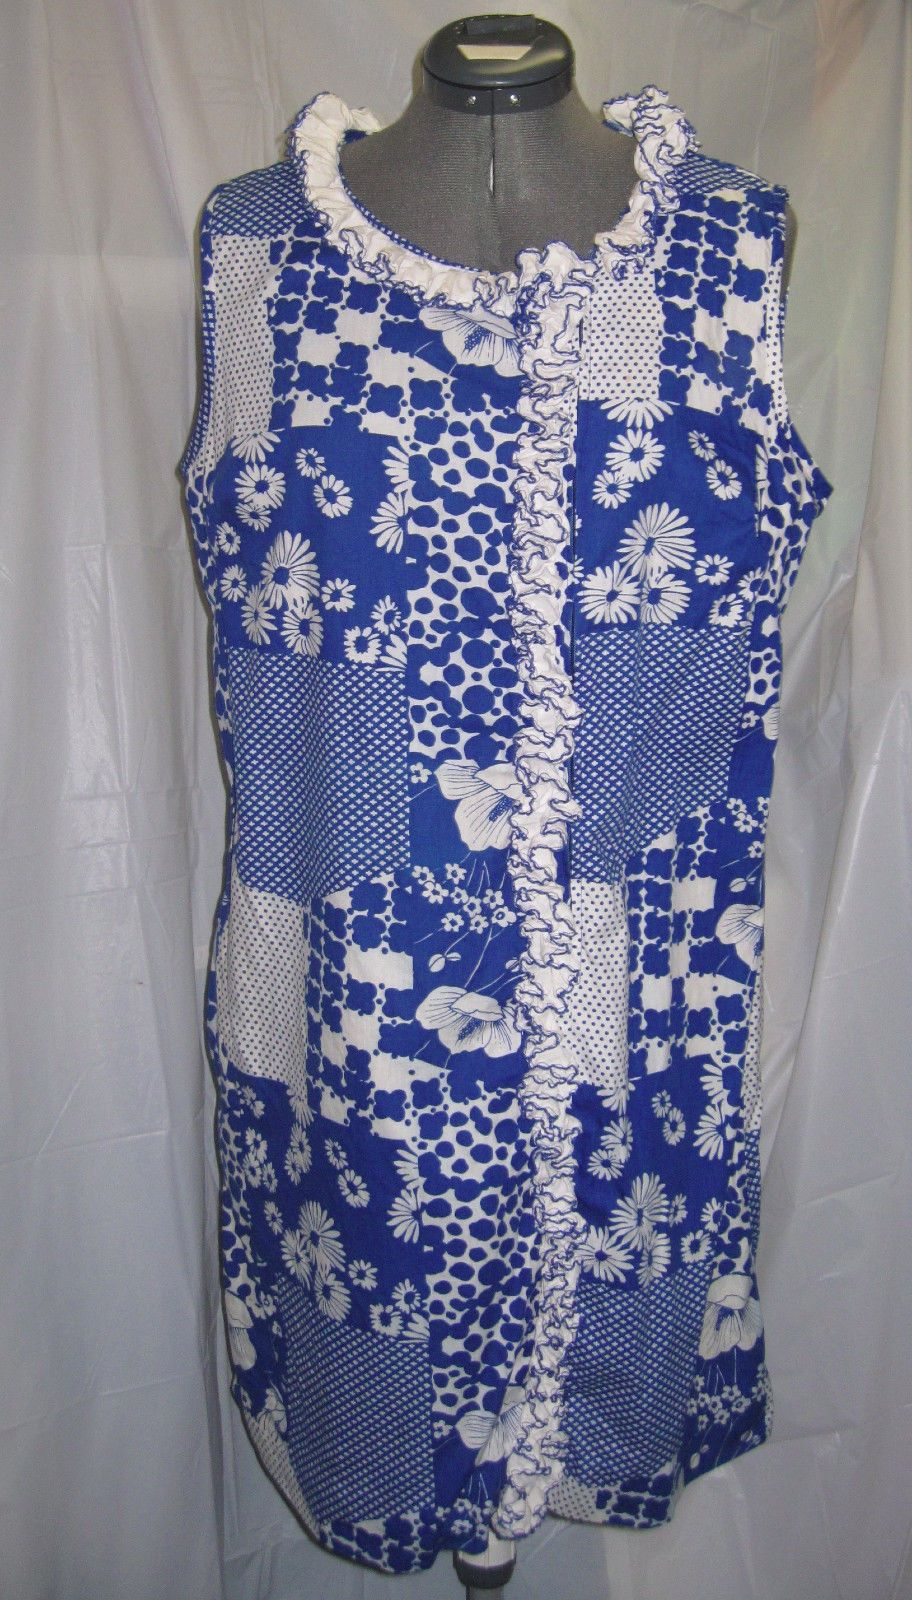 On Sale Womens Vintage Miss Elaine House Dress Blue White Ruffle Collar Size s M | eBay